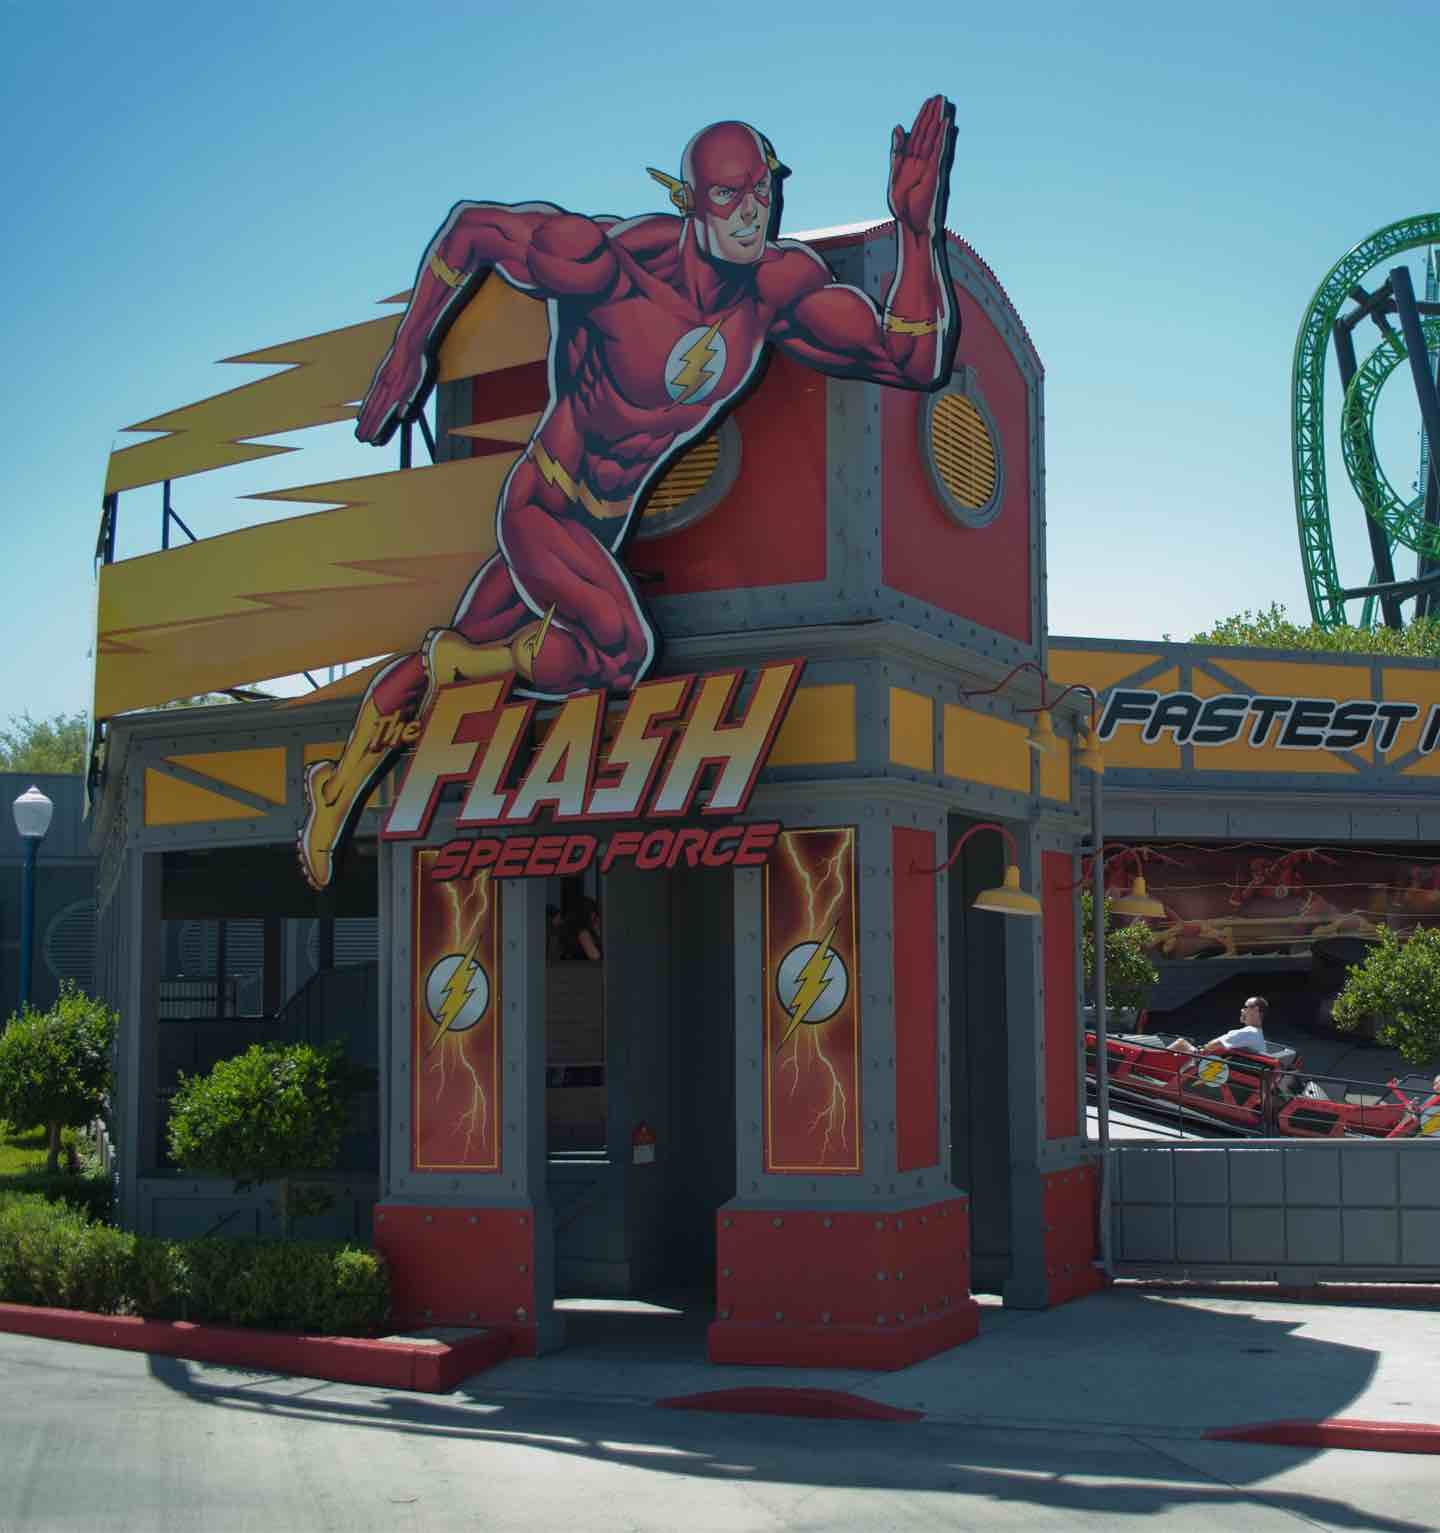 Sfmm_the_flash_speed_force_1440x1533_0